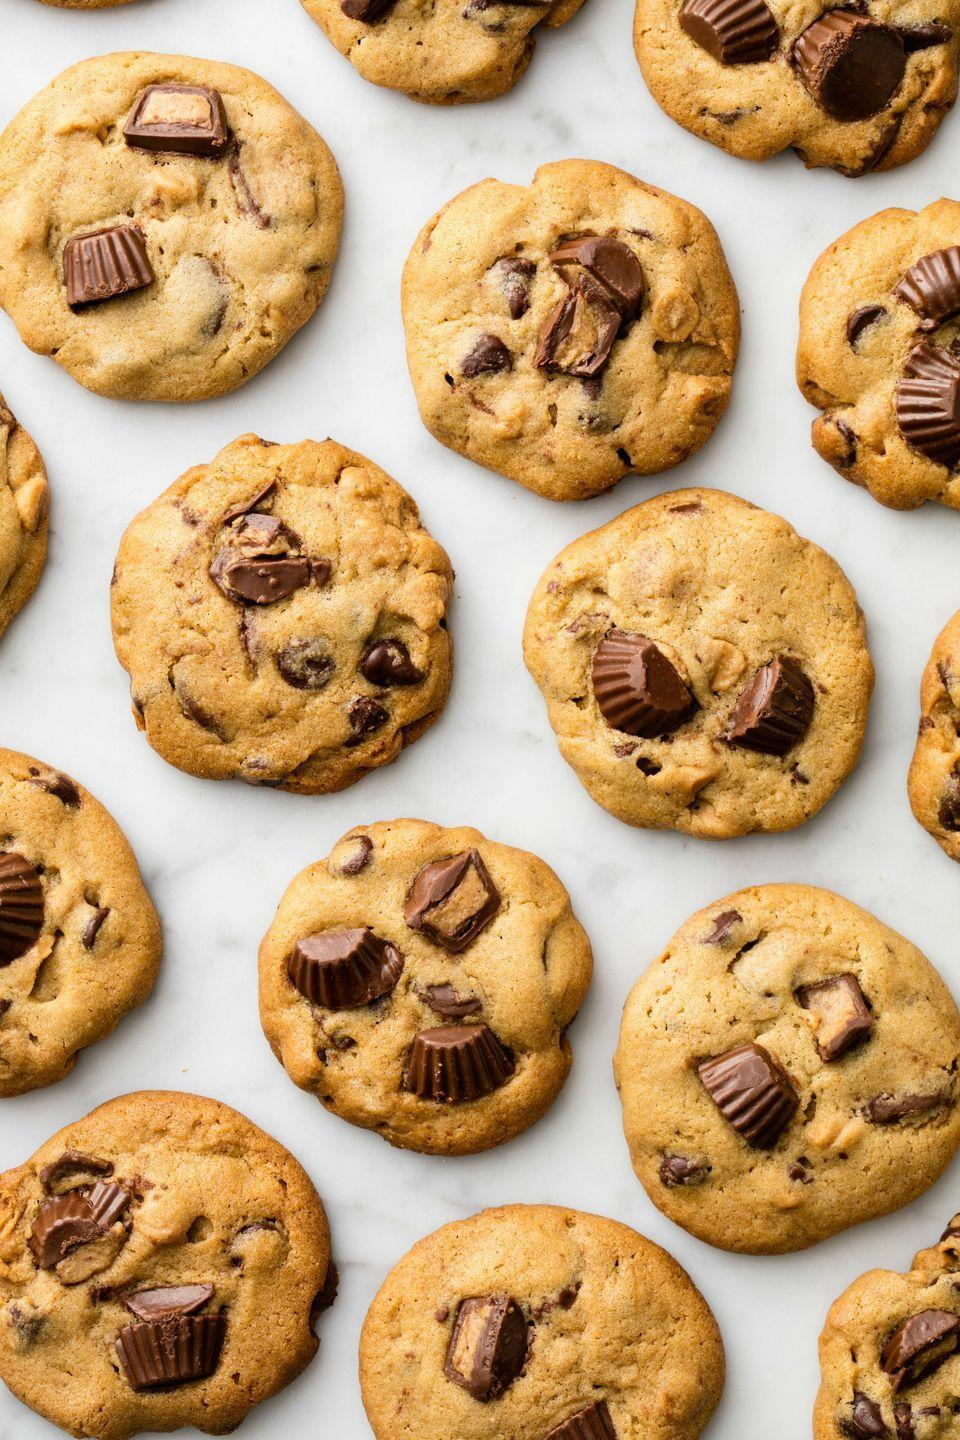 """<p>Peanut butter cookies are living their best life.</p><p>Get the recipe from <a href=""""https://www.delish.com/cooking/recipe-ideas/recipes/a50449/reeses-chip-cookies-recipe/"""" rel=""""nofollow noopener"""" target=""""_blank"""" data-ylk=""""slk:Delish"""" class=""""link rapid-noclick-resp"""">Delish</a>.</p>"""